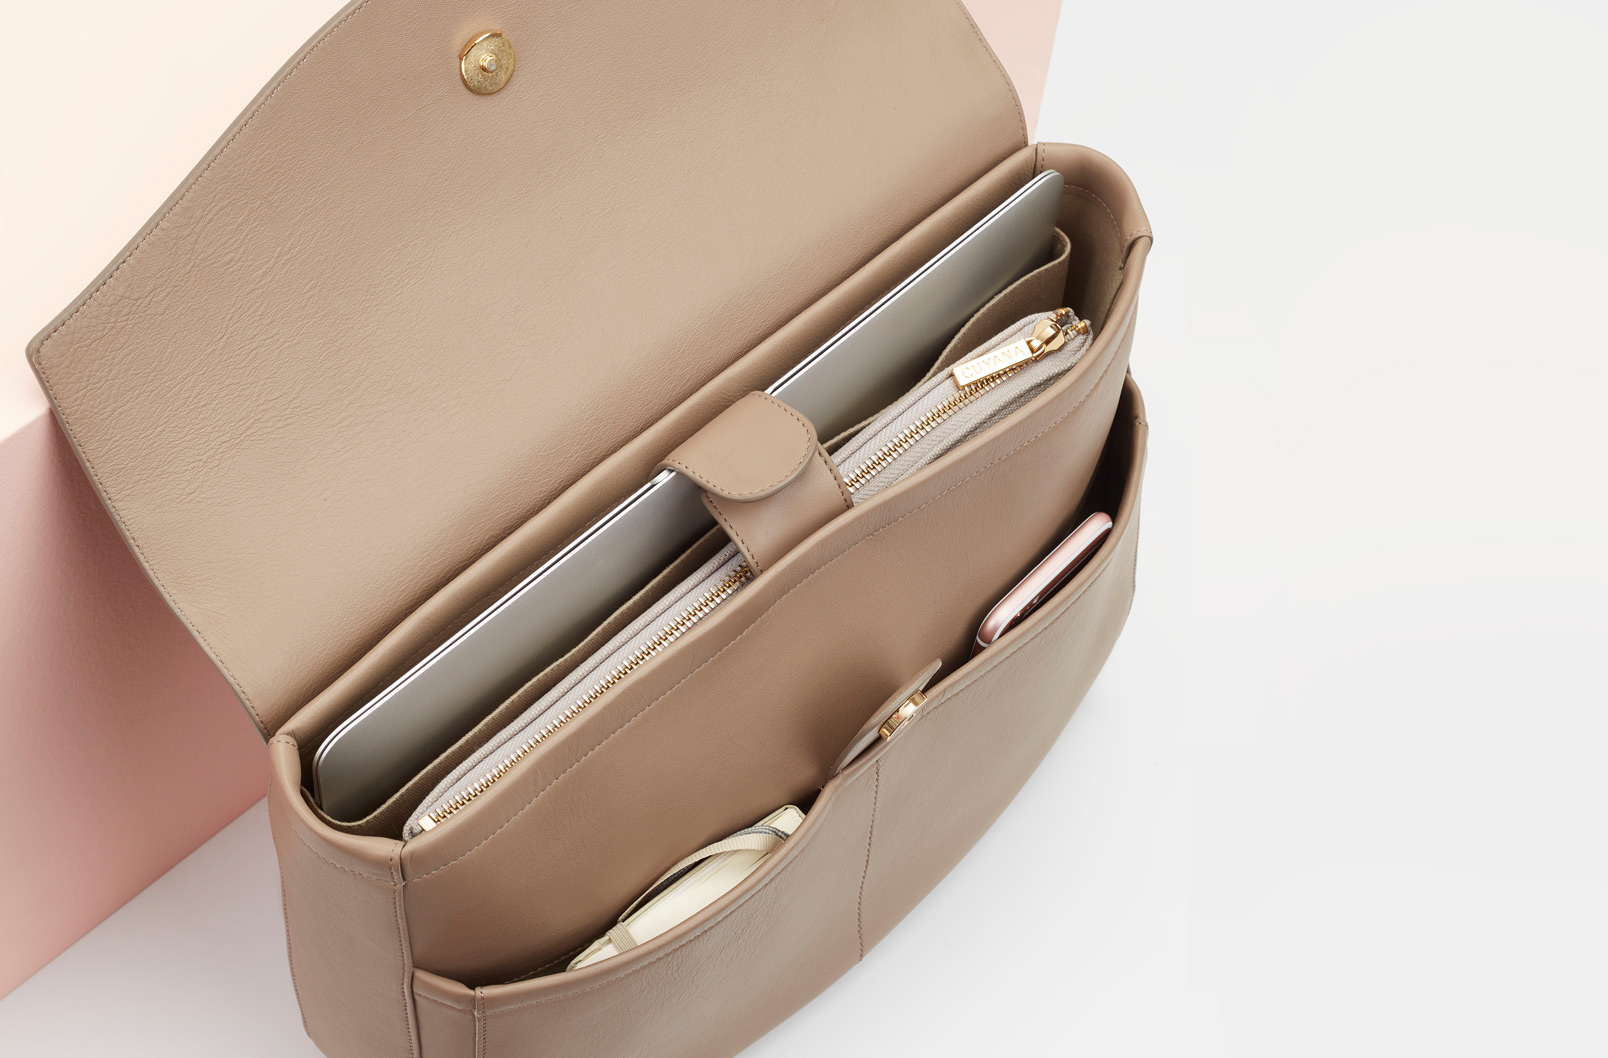 Interior image showing laptop inside Convertible Satchel with pocket option